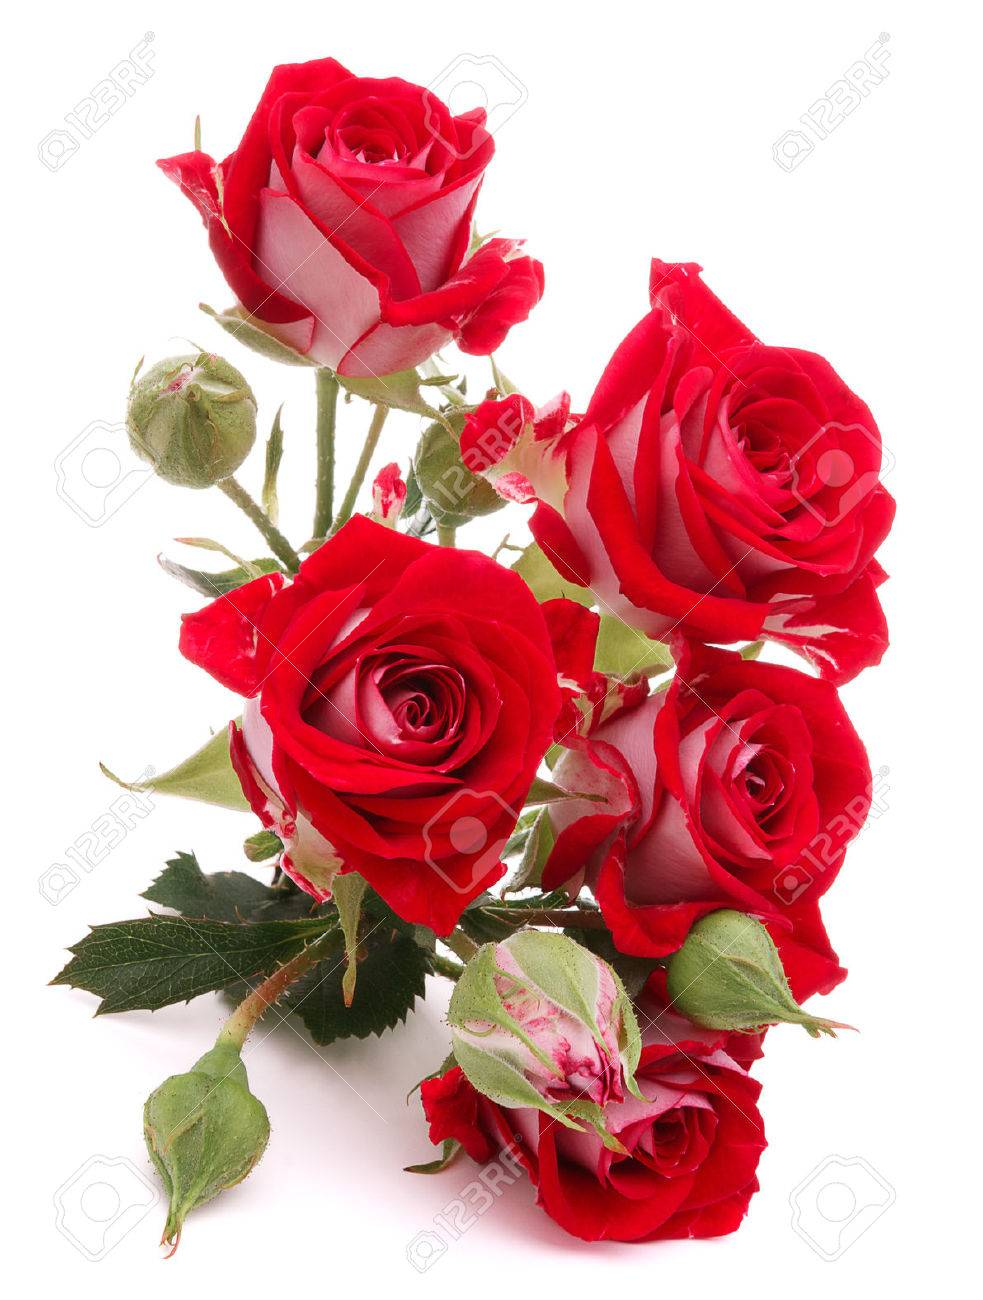 Red Rose Flower Bouquet Isolated On White Stock Photo, Picture And ...